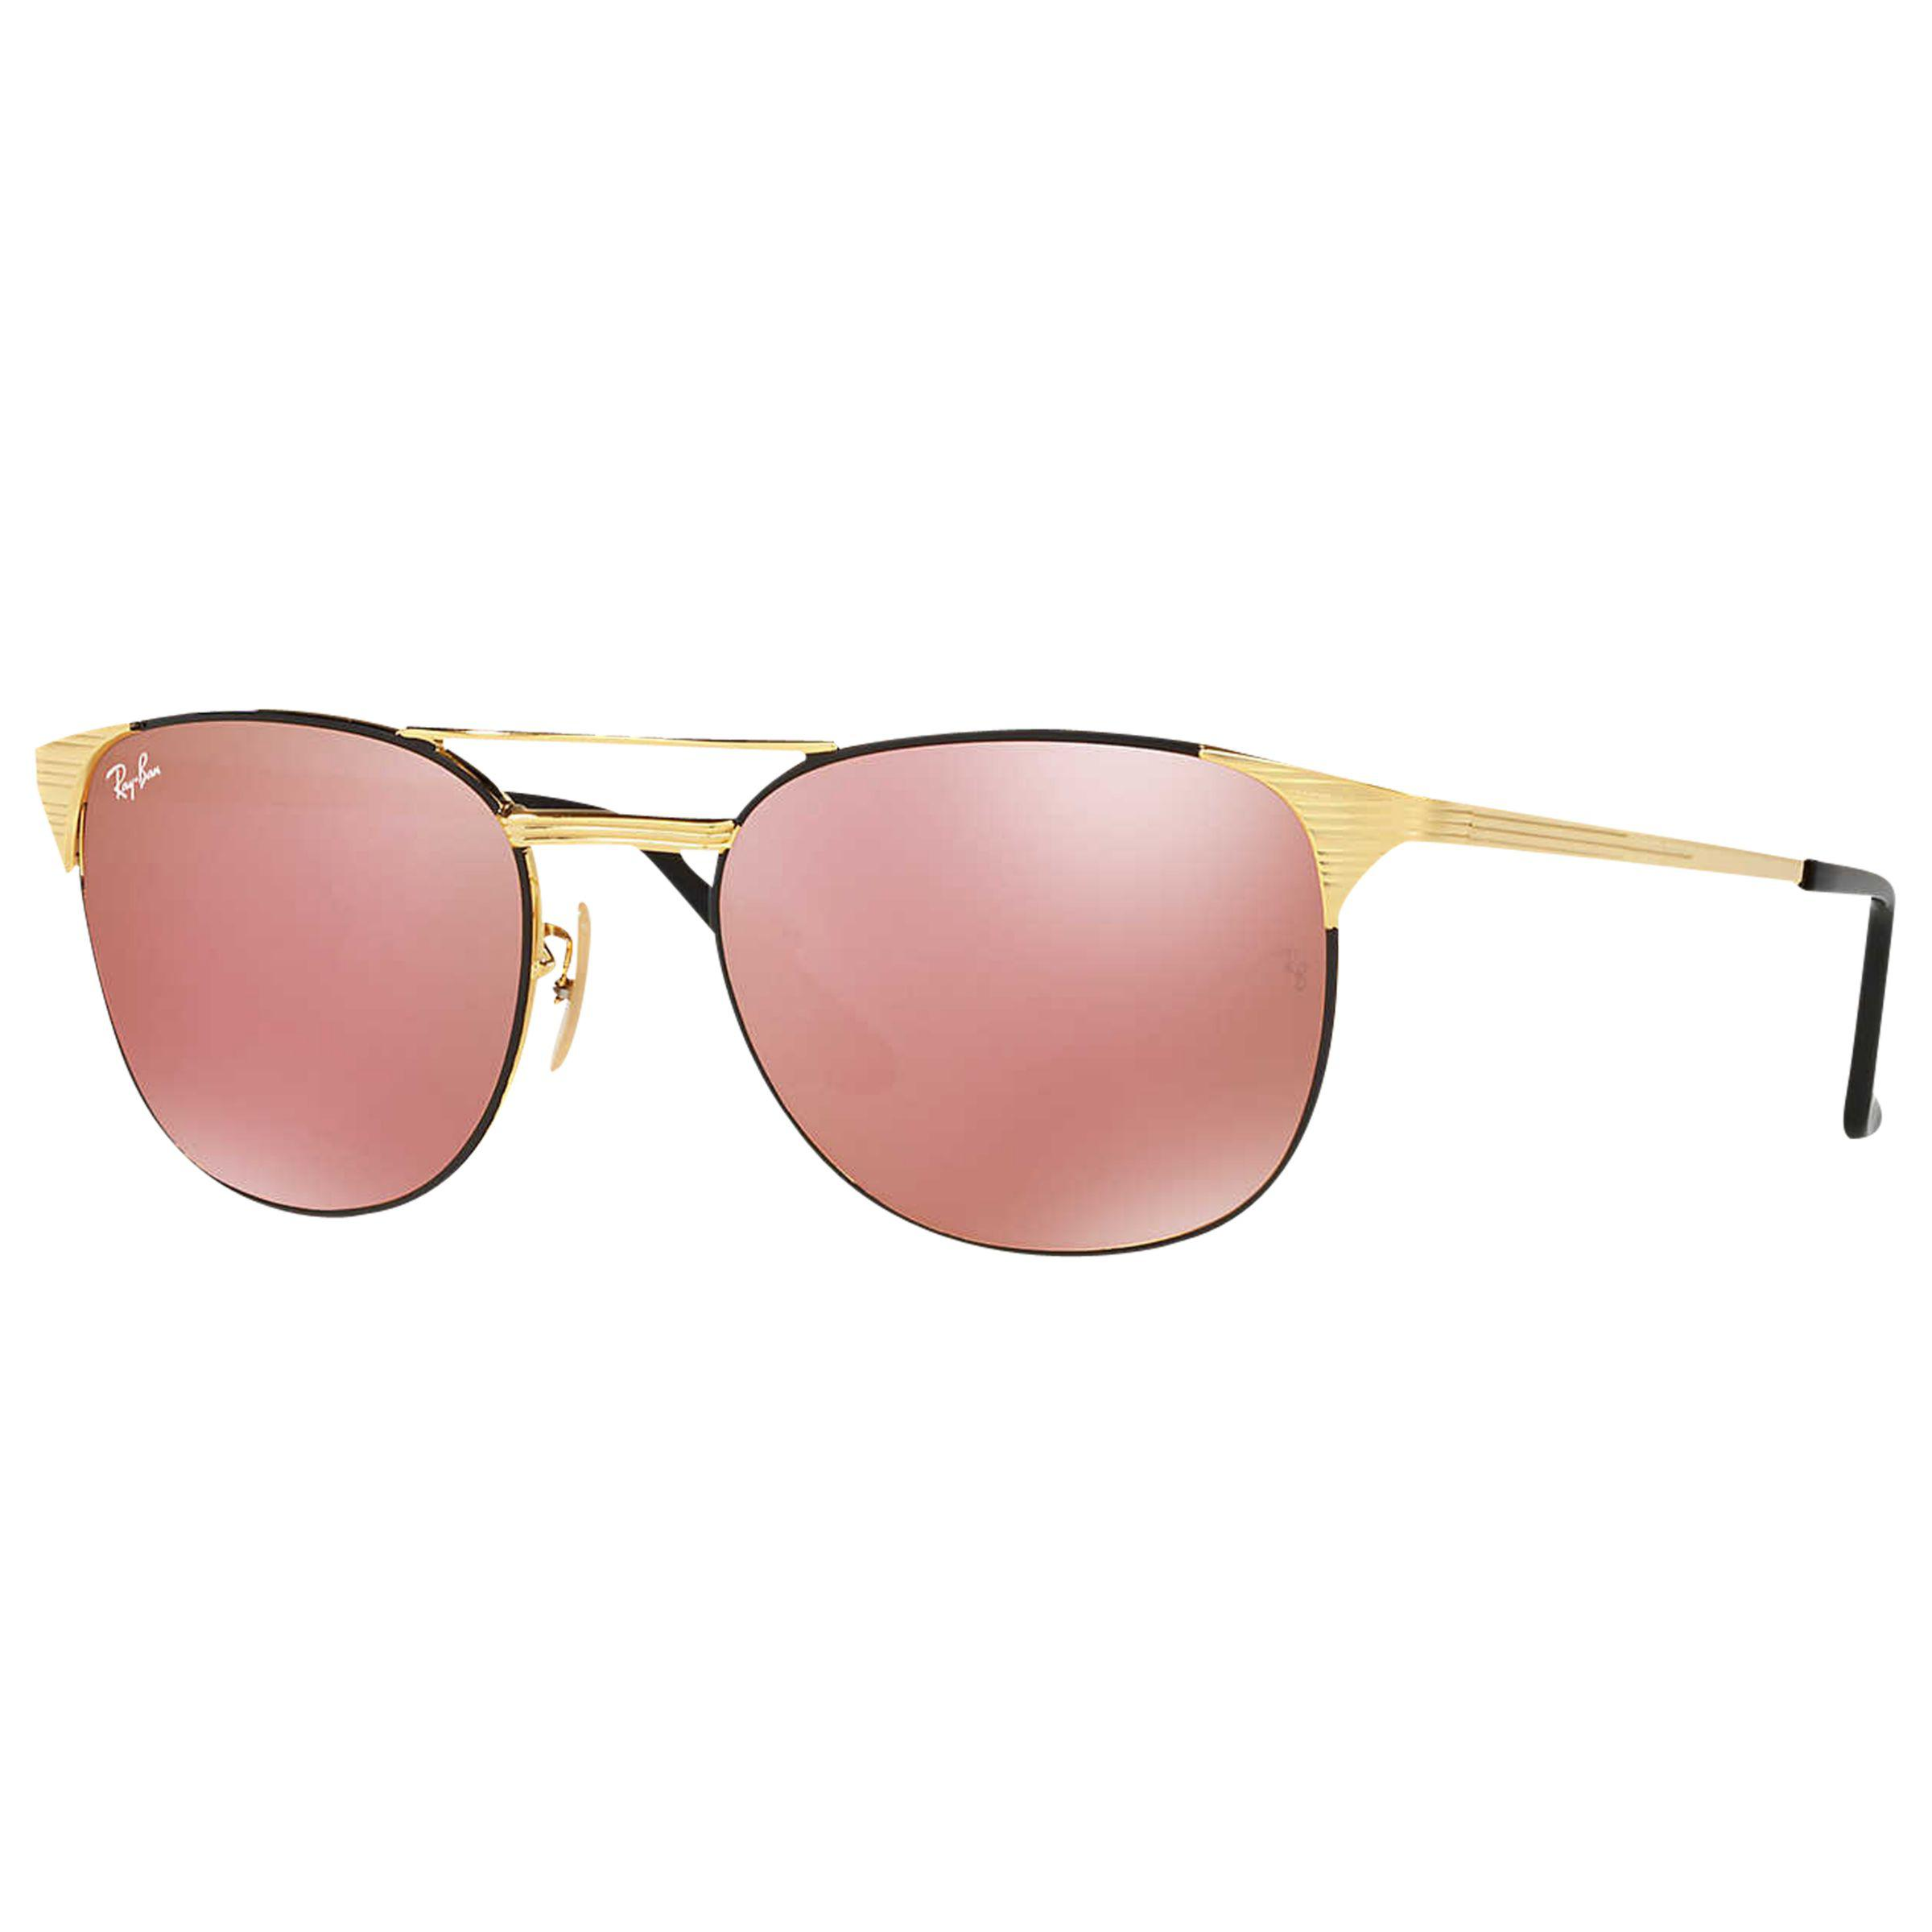 c7a842a7df Ray-Ban Signet Square Mirrored Sunglasses in Pink for Men - Lyst